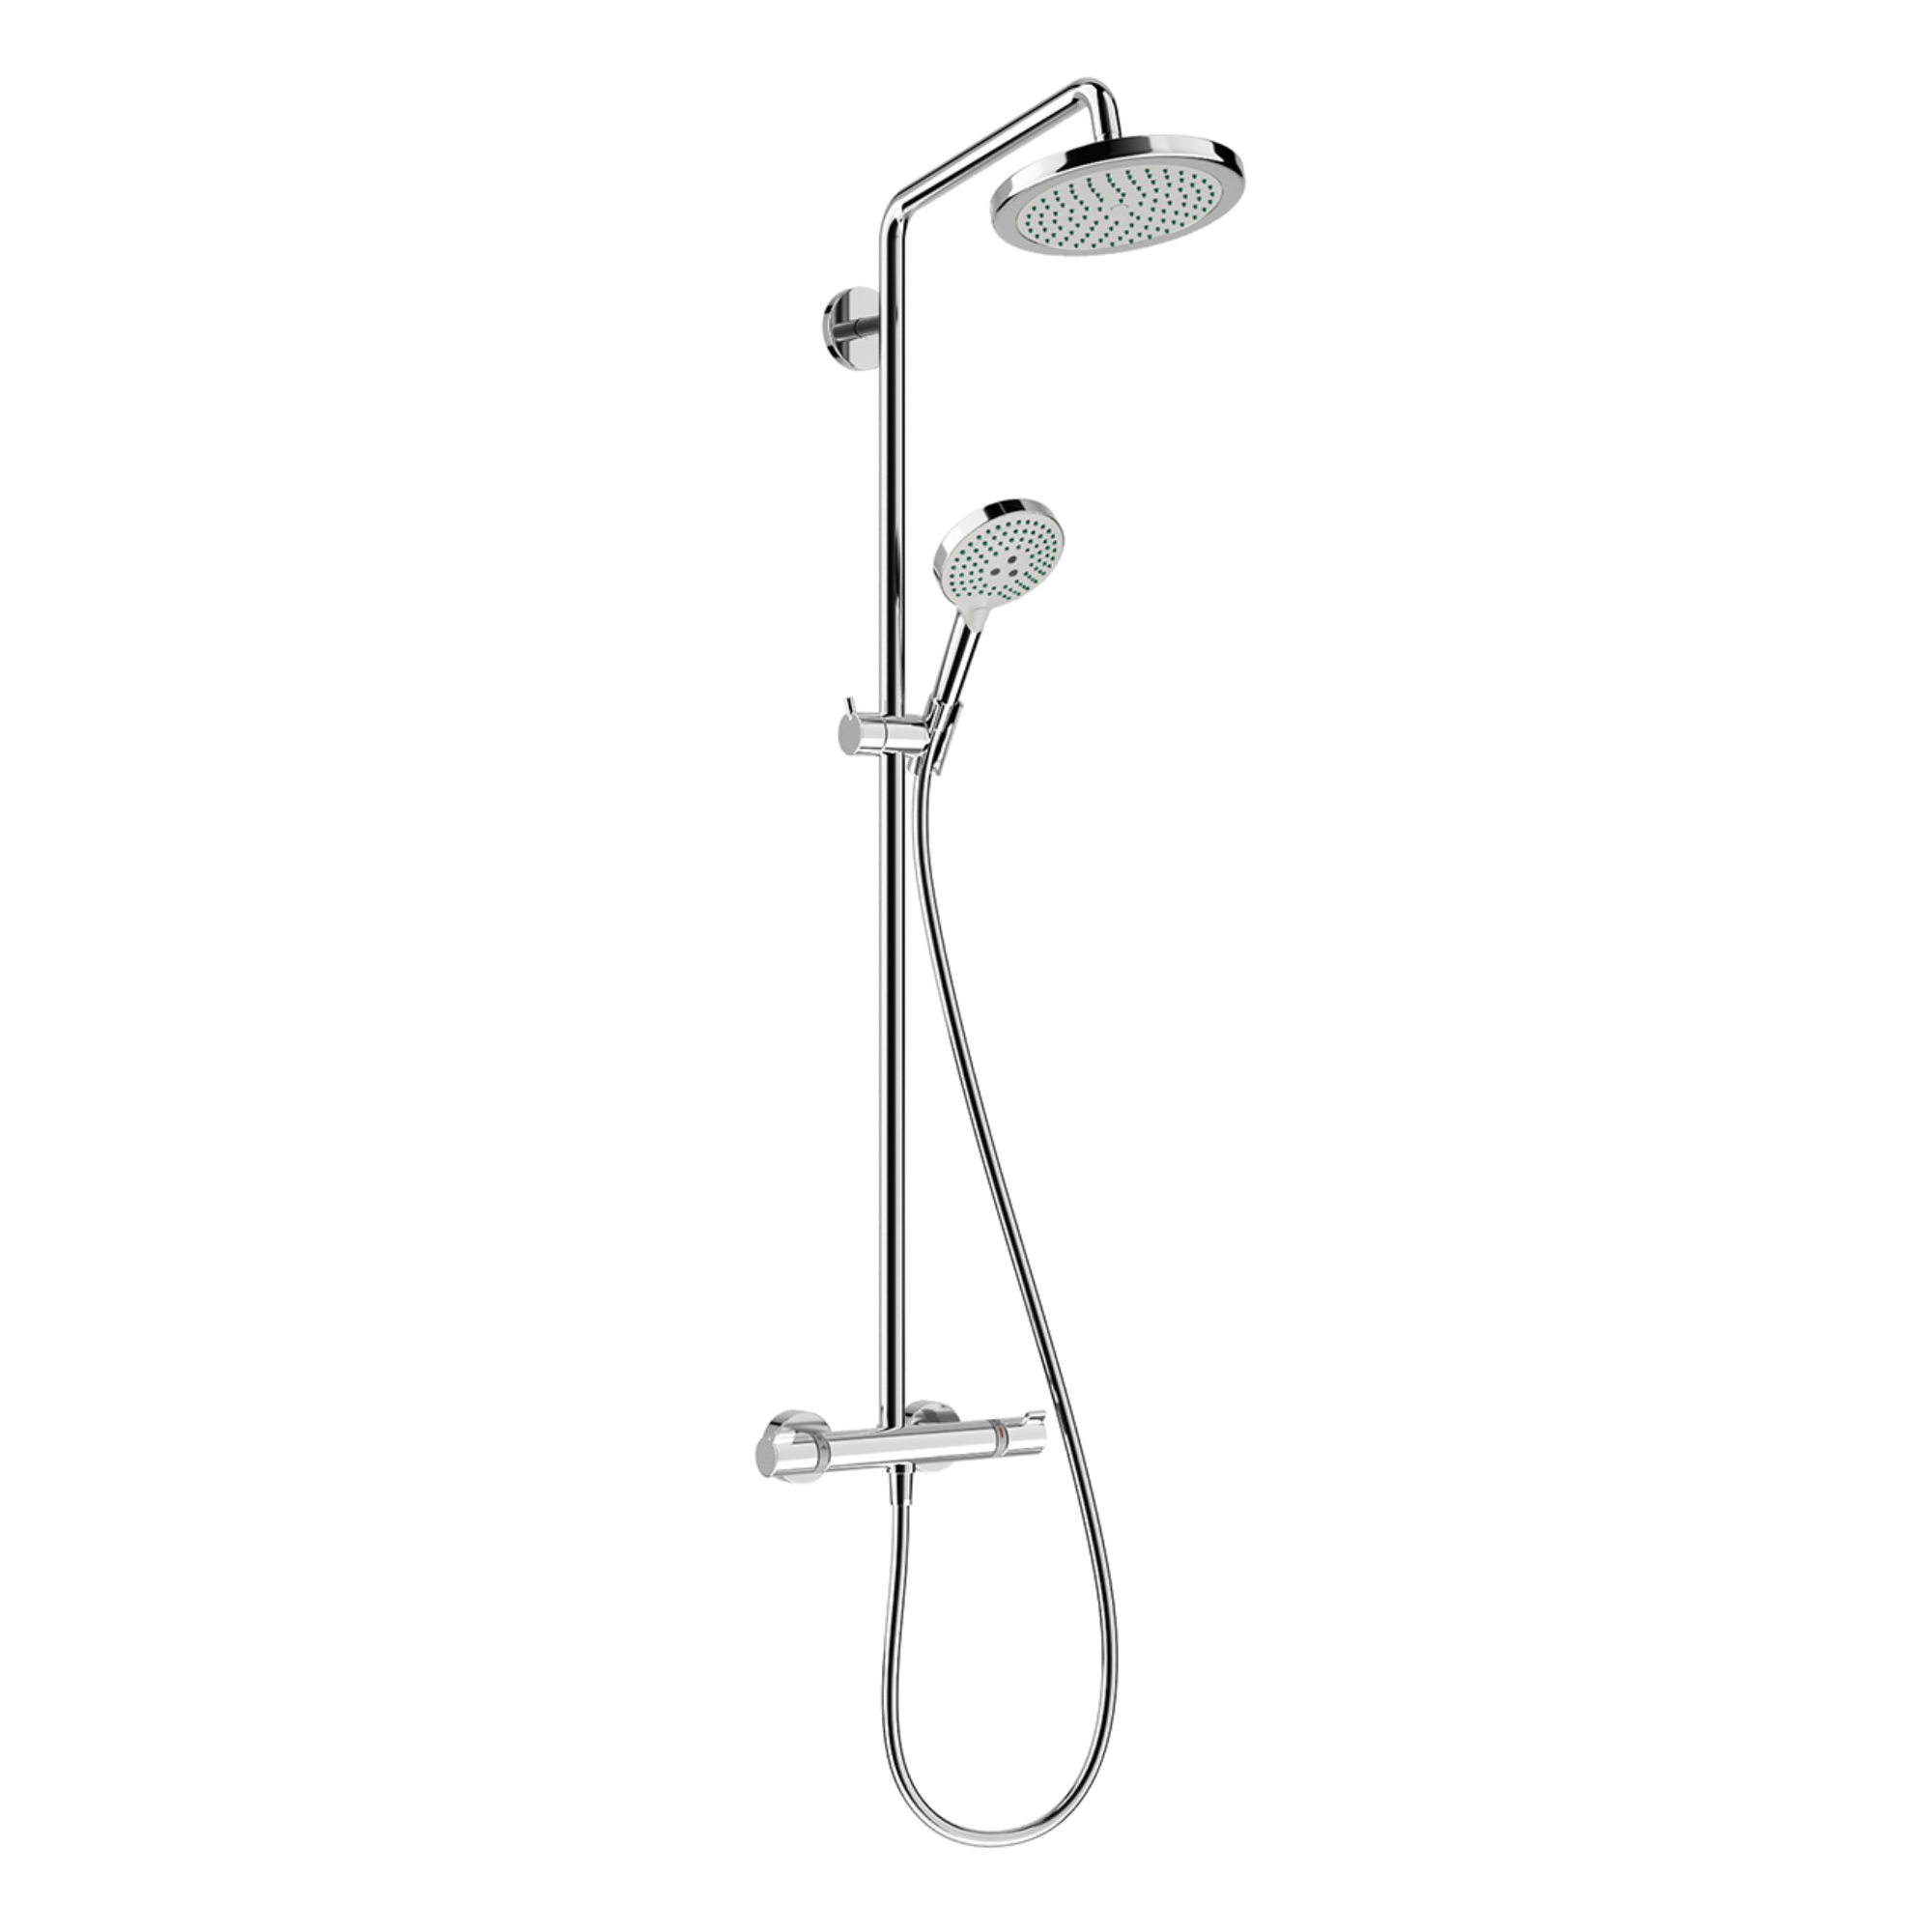 Croma Showerpipe 220 Thermostat by Hansgrohe